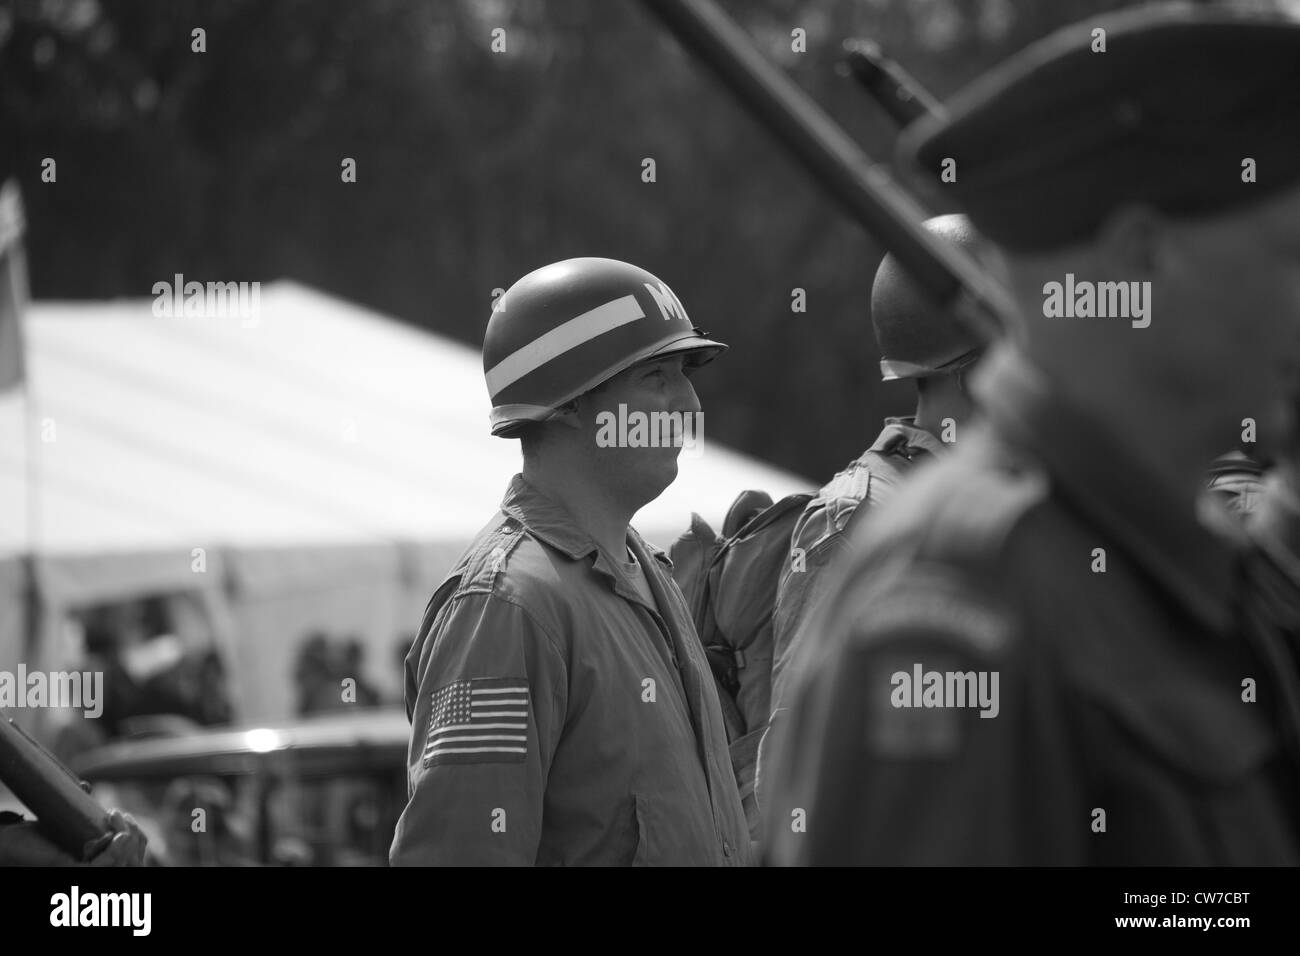 Re-enactor playing 1940's British and American Army Soldiers with others on parade - Stock Image